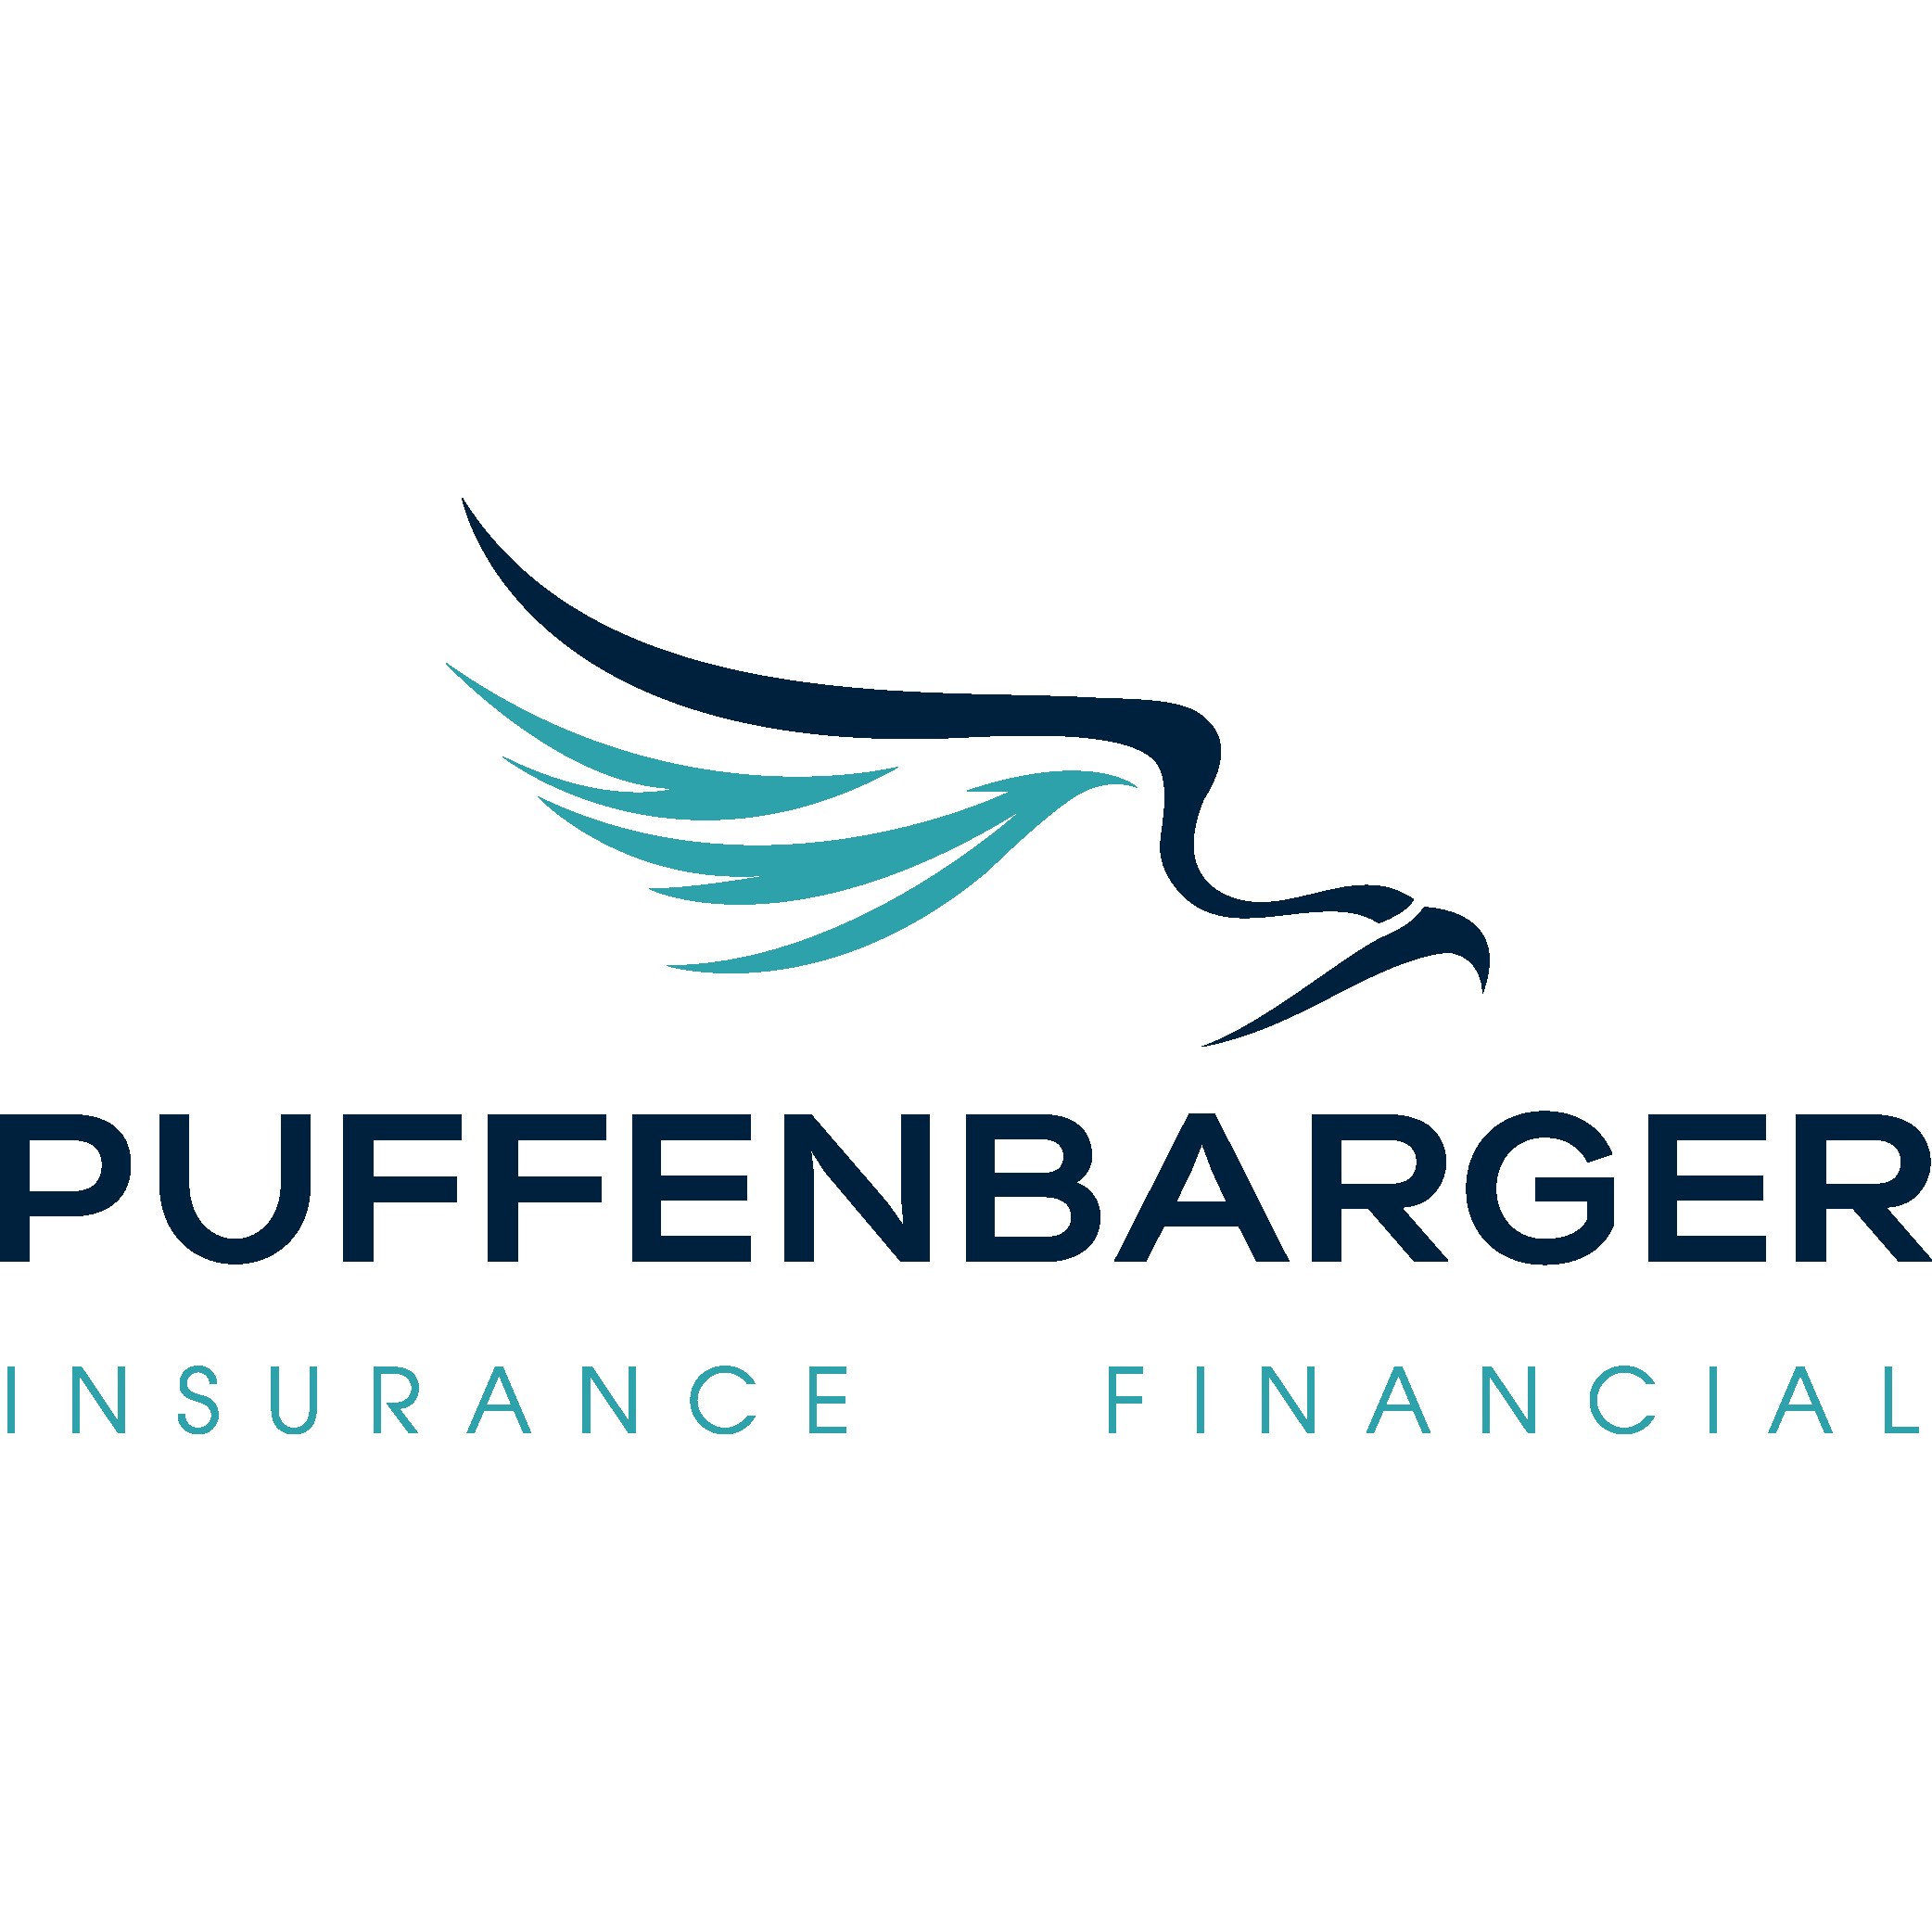 Keith W Puffenbarger, Insurance Agent